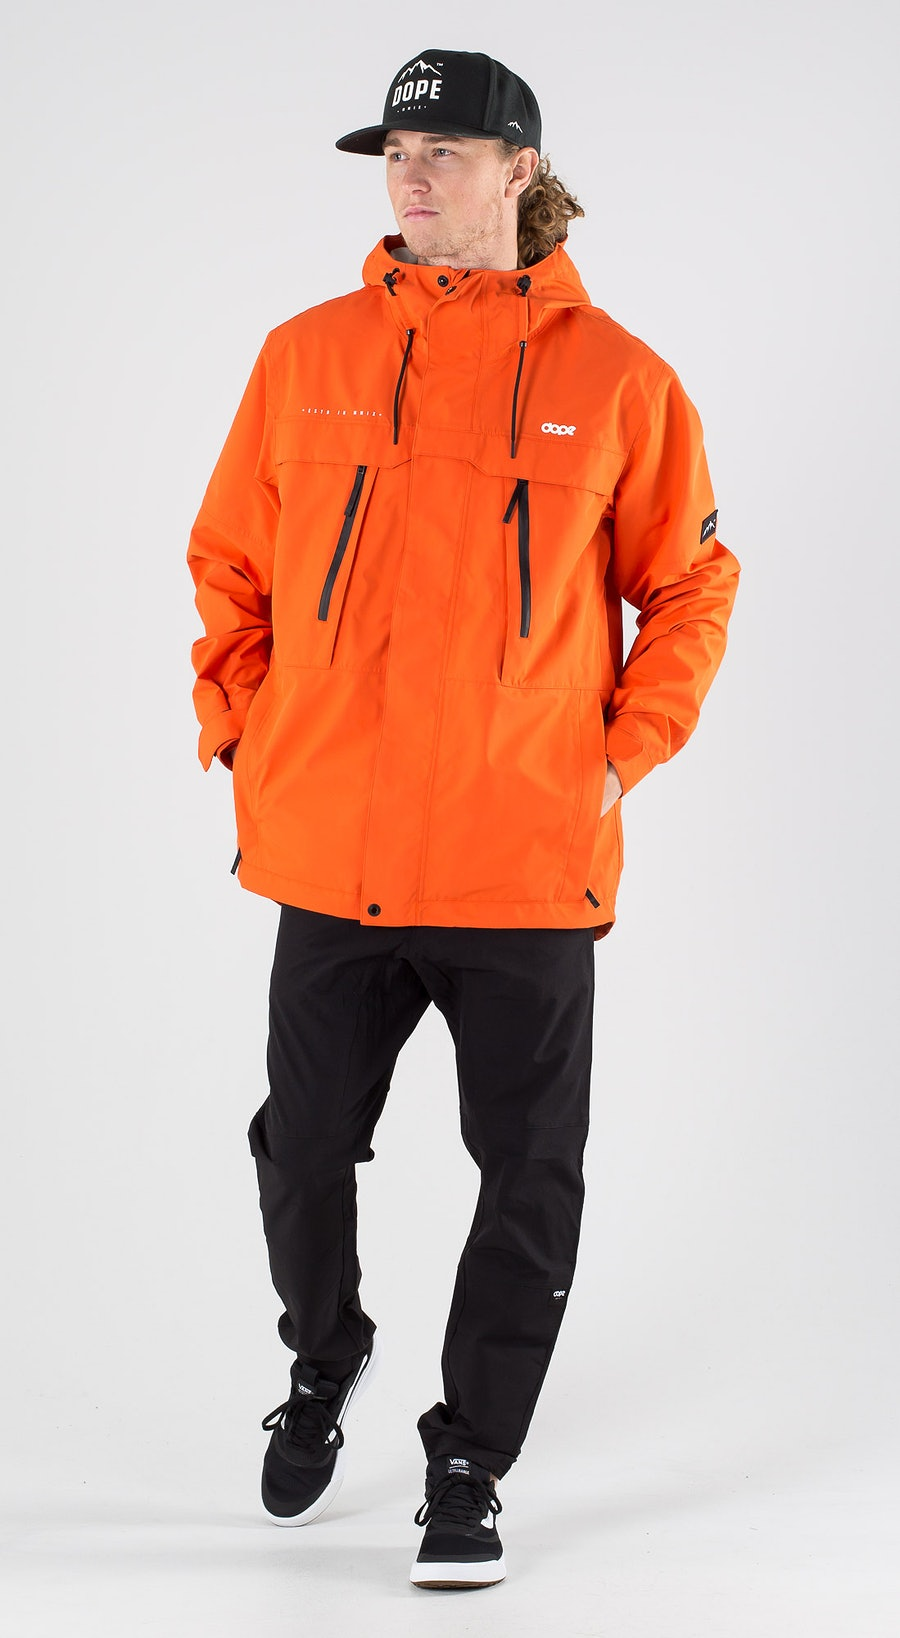 Dope Trekker Orange Outfit Multi